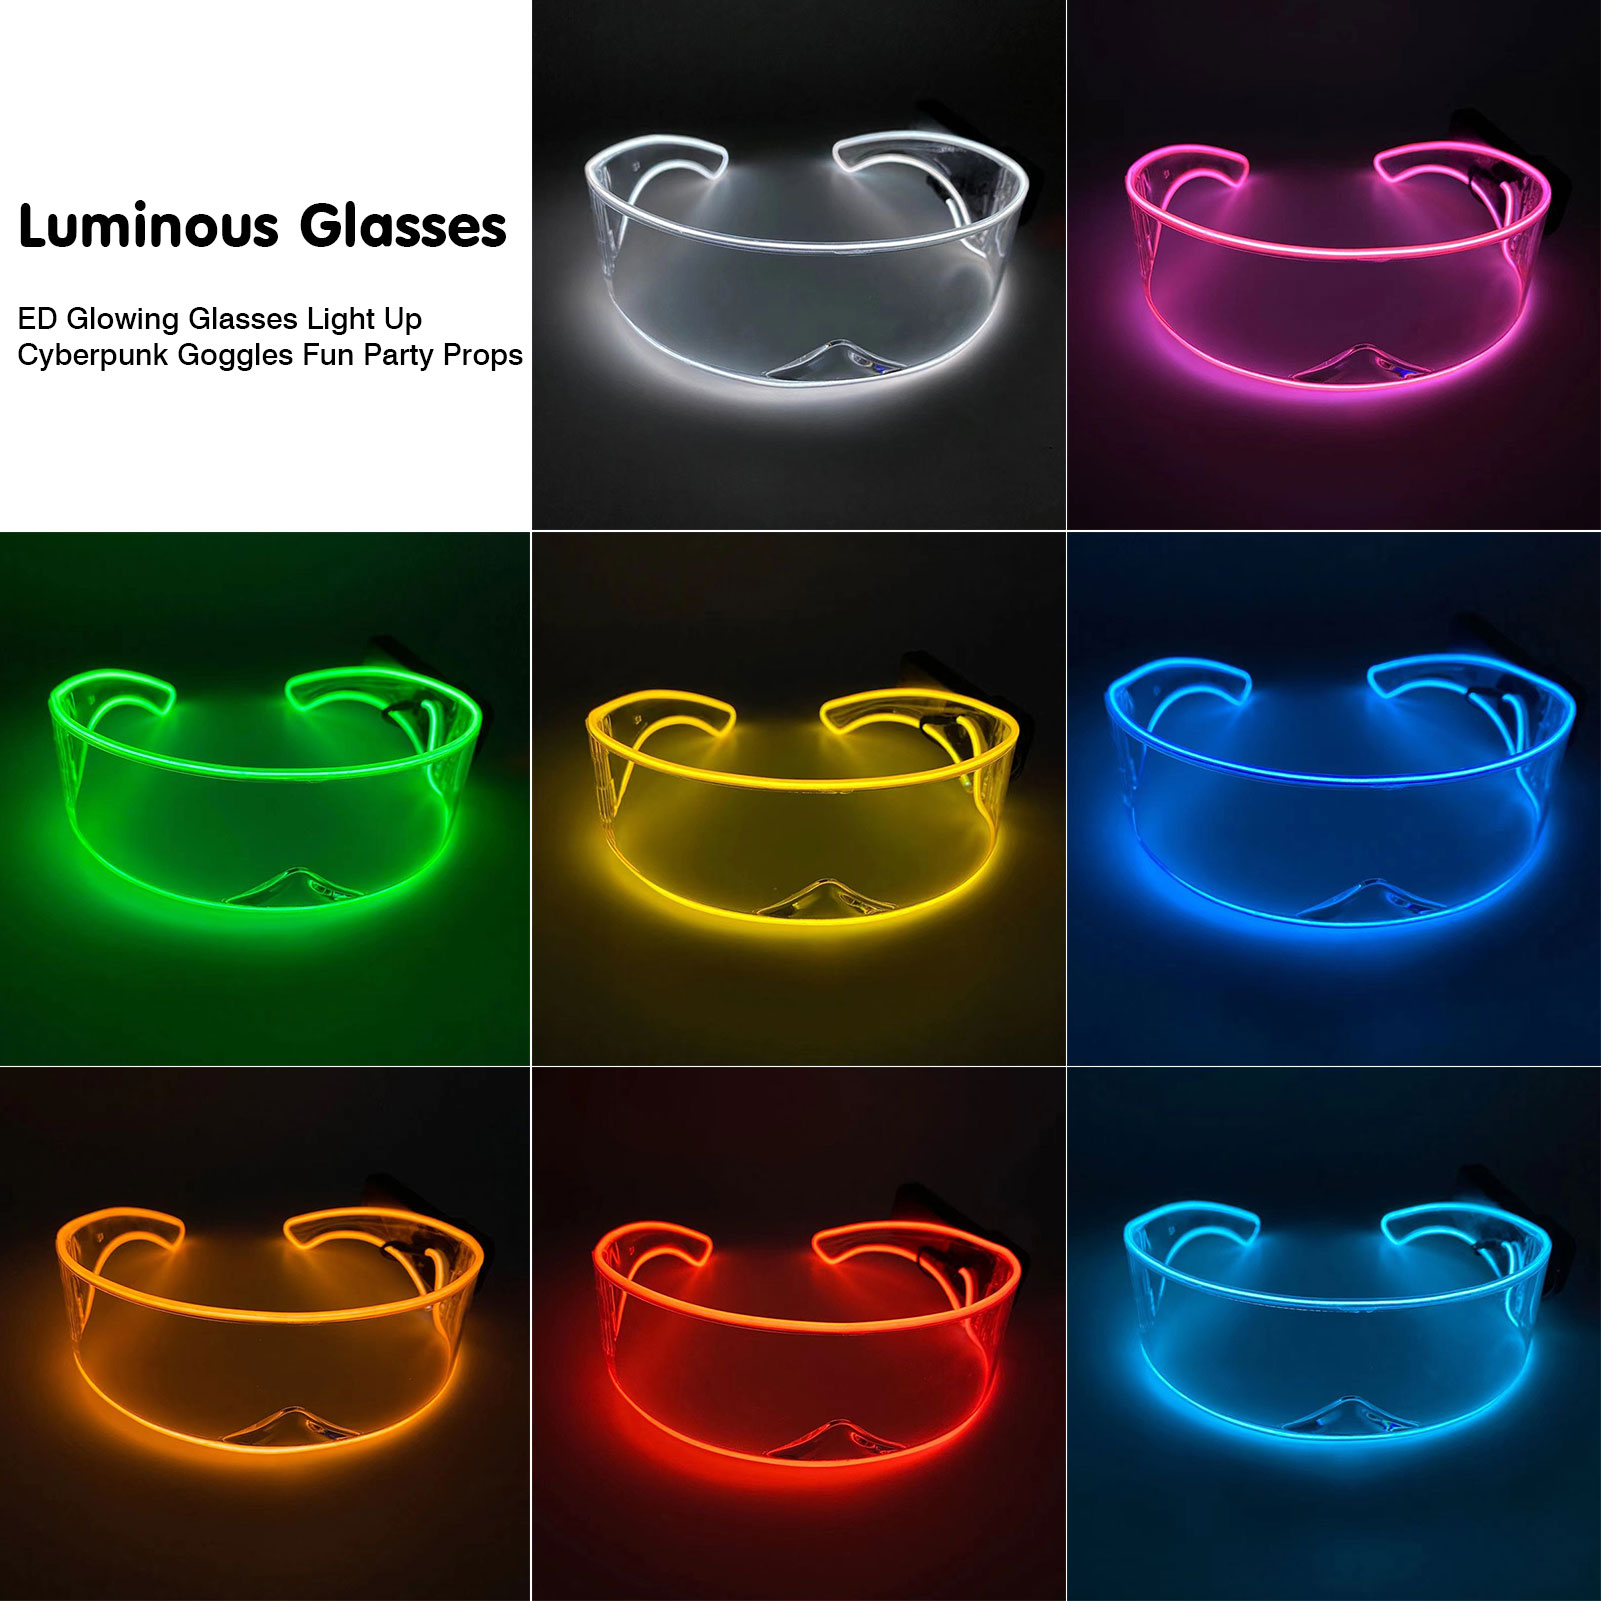 2*AAA LED Glowing Glasses Light Up Cyberpunk Goggles For Parties, Concerts, Bars, KTV, Dancing And Other Entertainment Venues